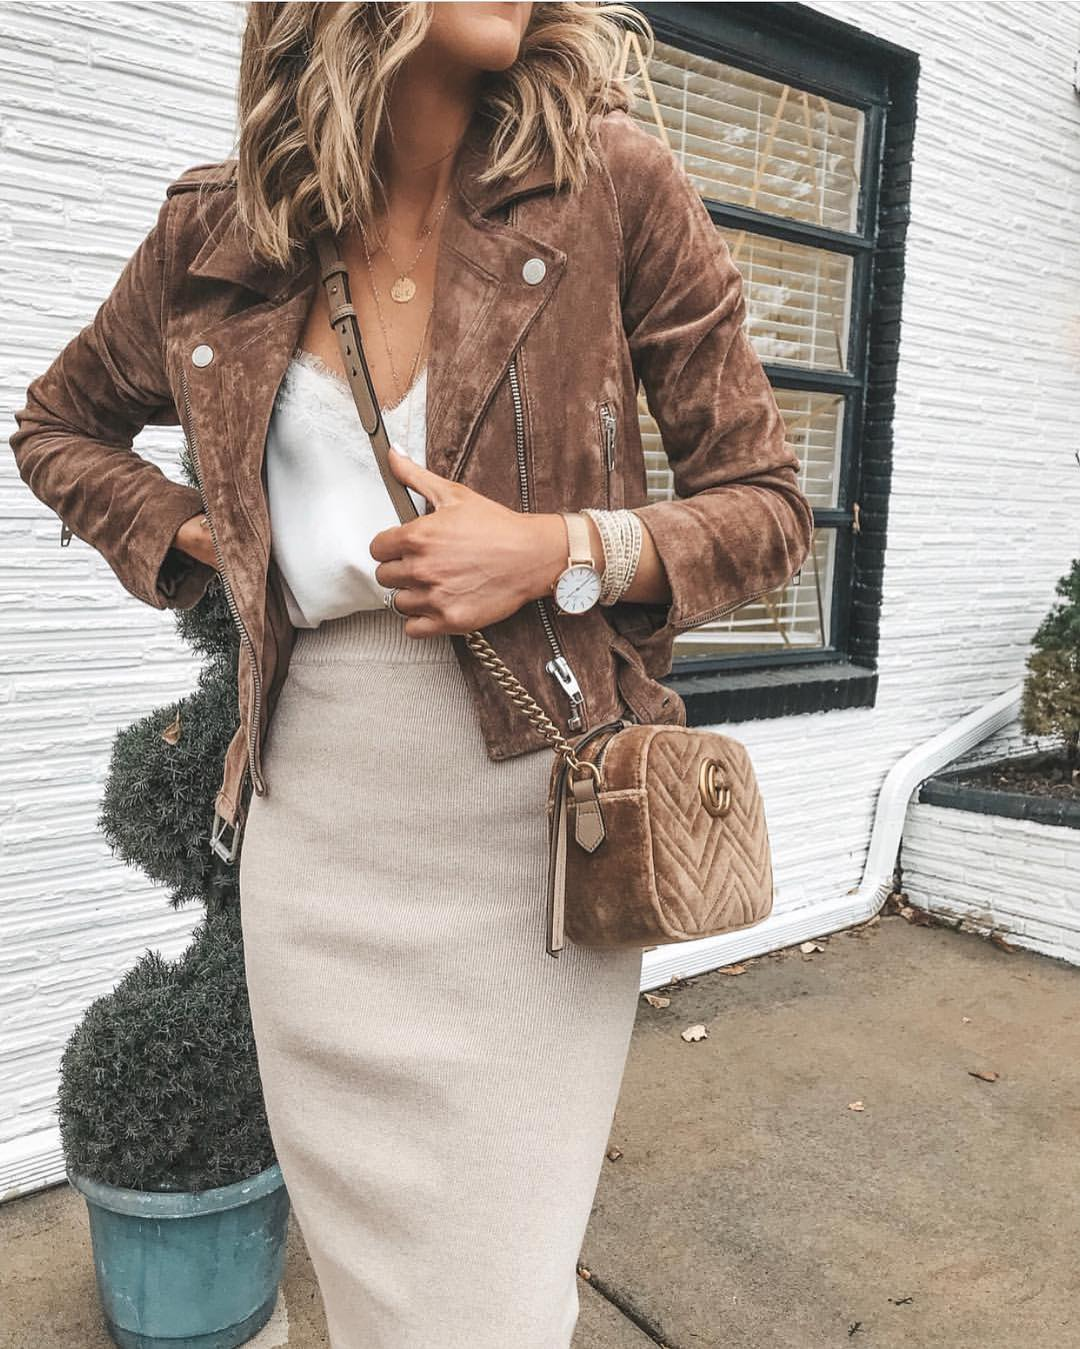 Brown Suede Biker Jacket And Knitted Cream-White Pencil Skirt Combo 2020